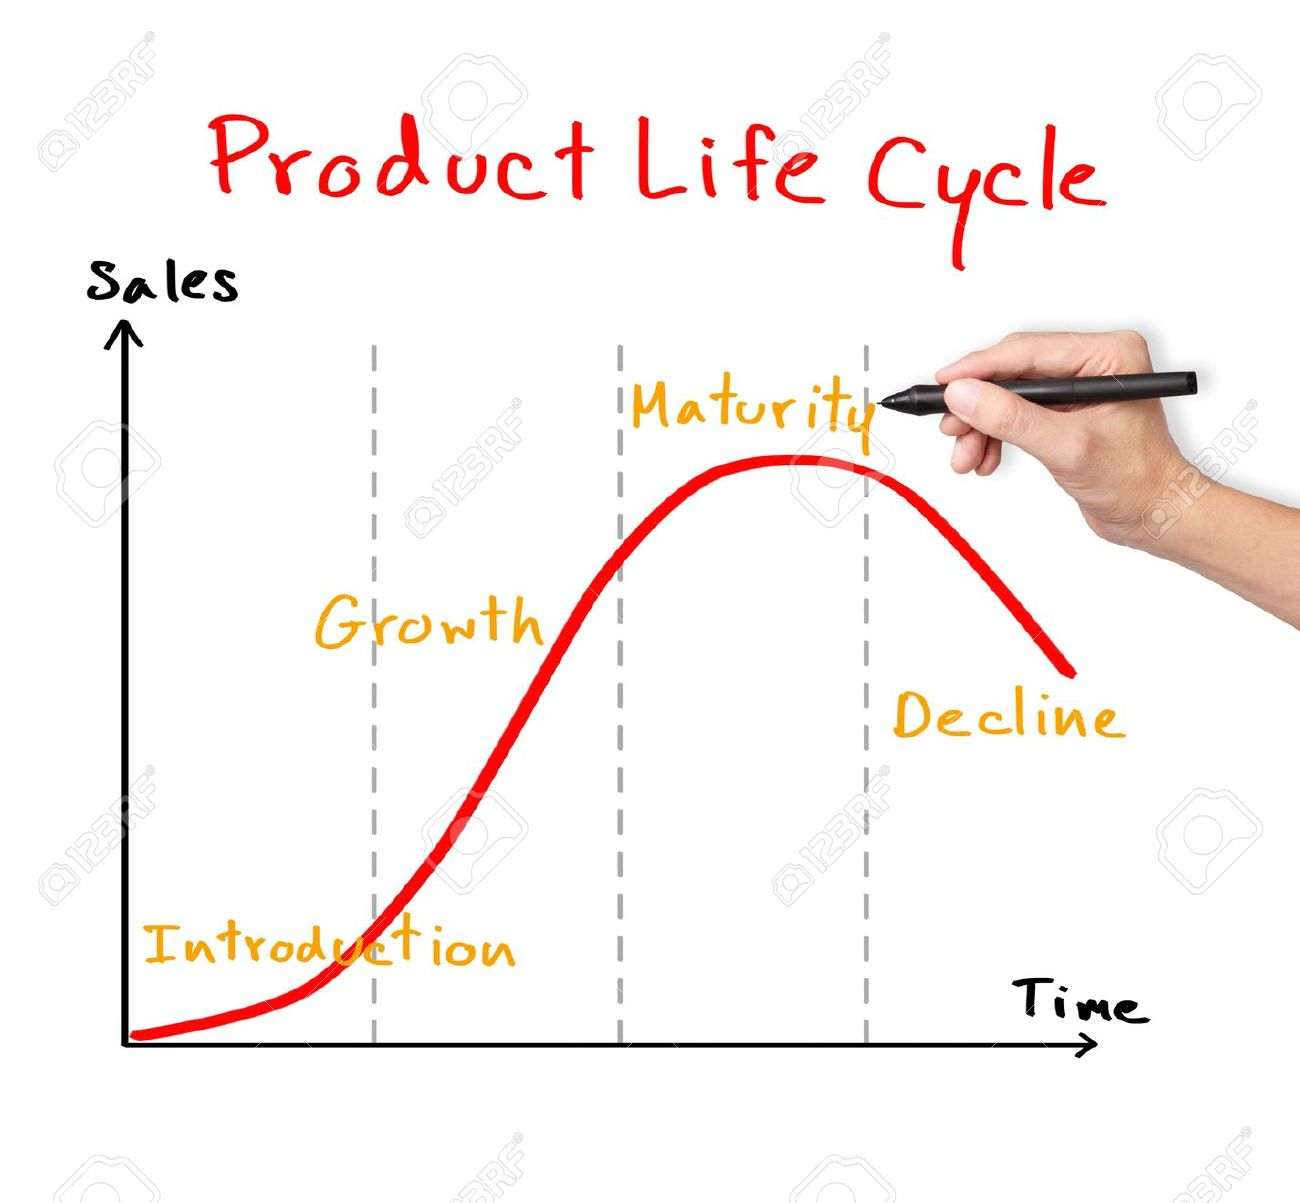 human life cycle stock photos images     royalty free human    human life cycle  business hand drawing product life cycle chart marketing concept stock photo